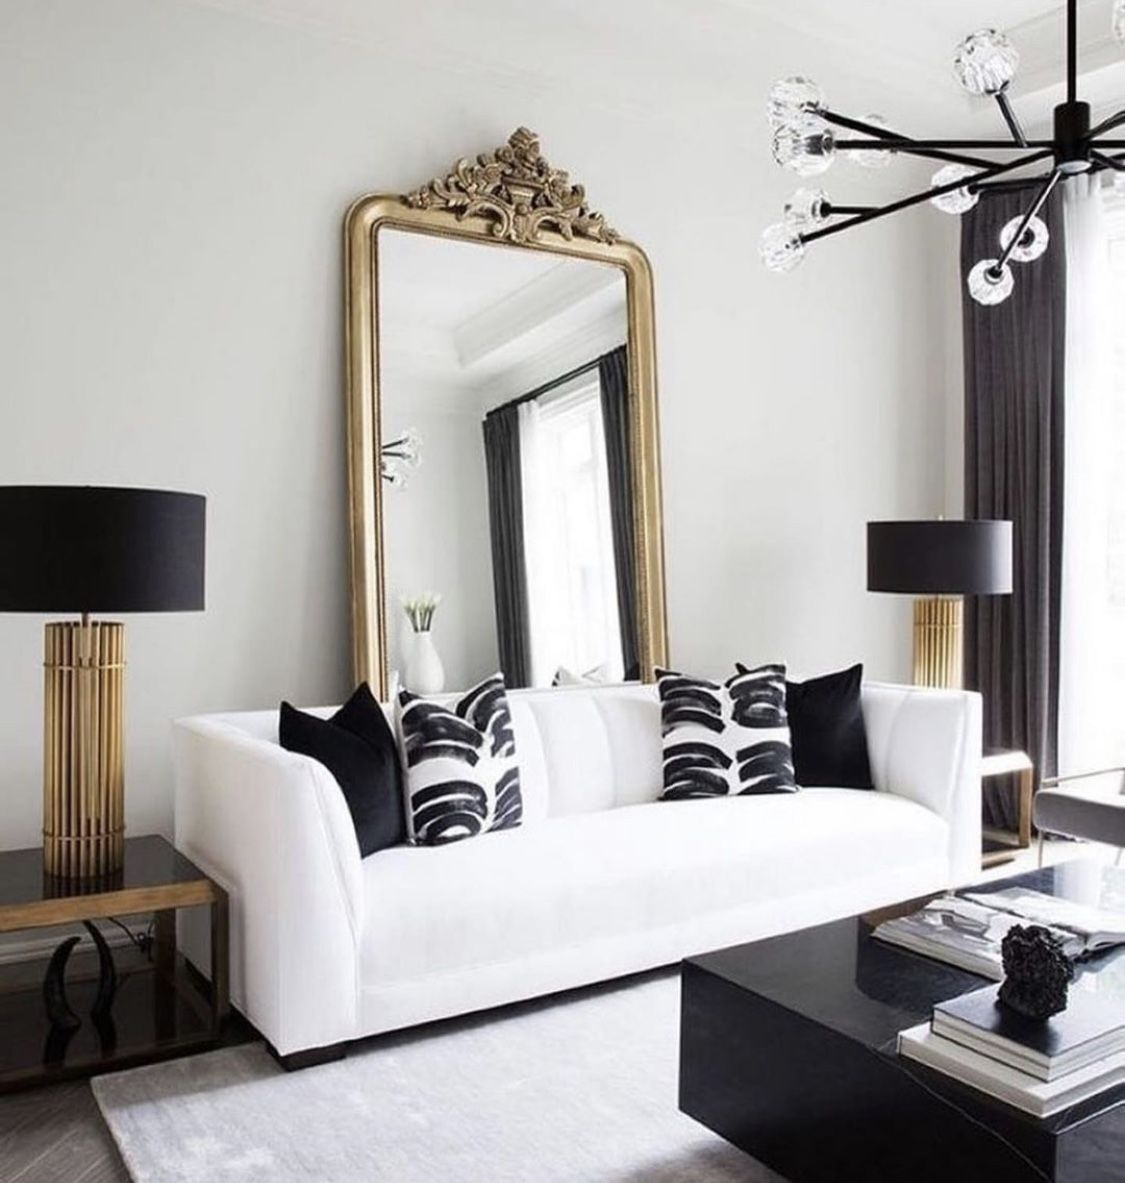 Restoration Hardware Style Living Room Decor With White Sofa And Big Mirror Gold Living Room Living Room White Black And White Living Room